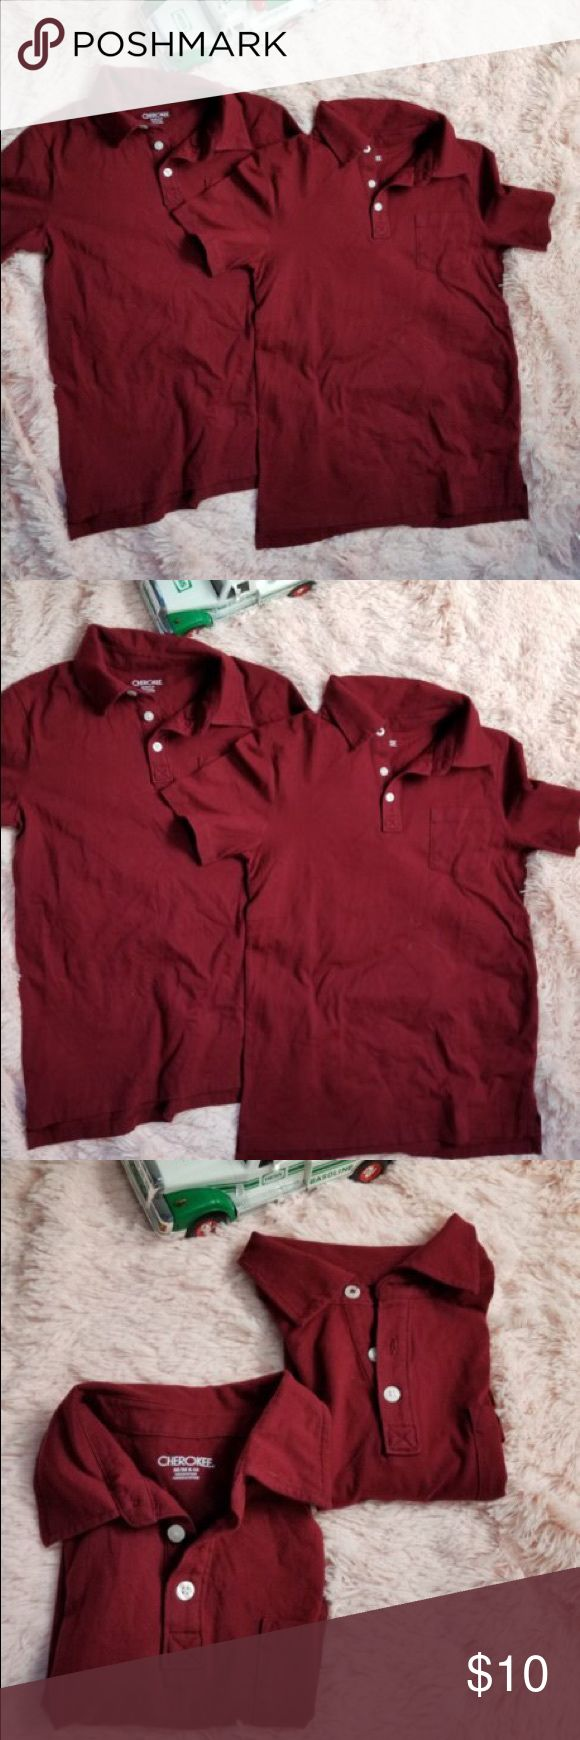 Cherokee Boys Size 8 Short Sleeve Red Shirts Inv-N.   shirts are in great condition.  Great for kids uniforms for school or just to wear anytime Cherokee Shirts & Tops Polos